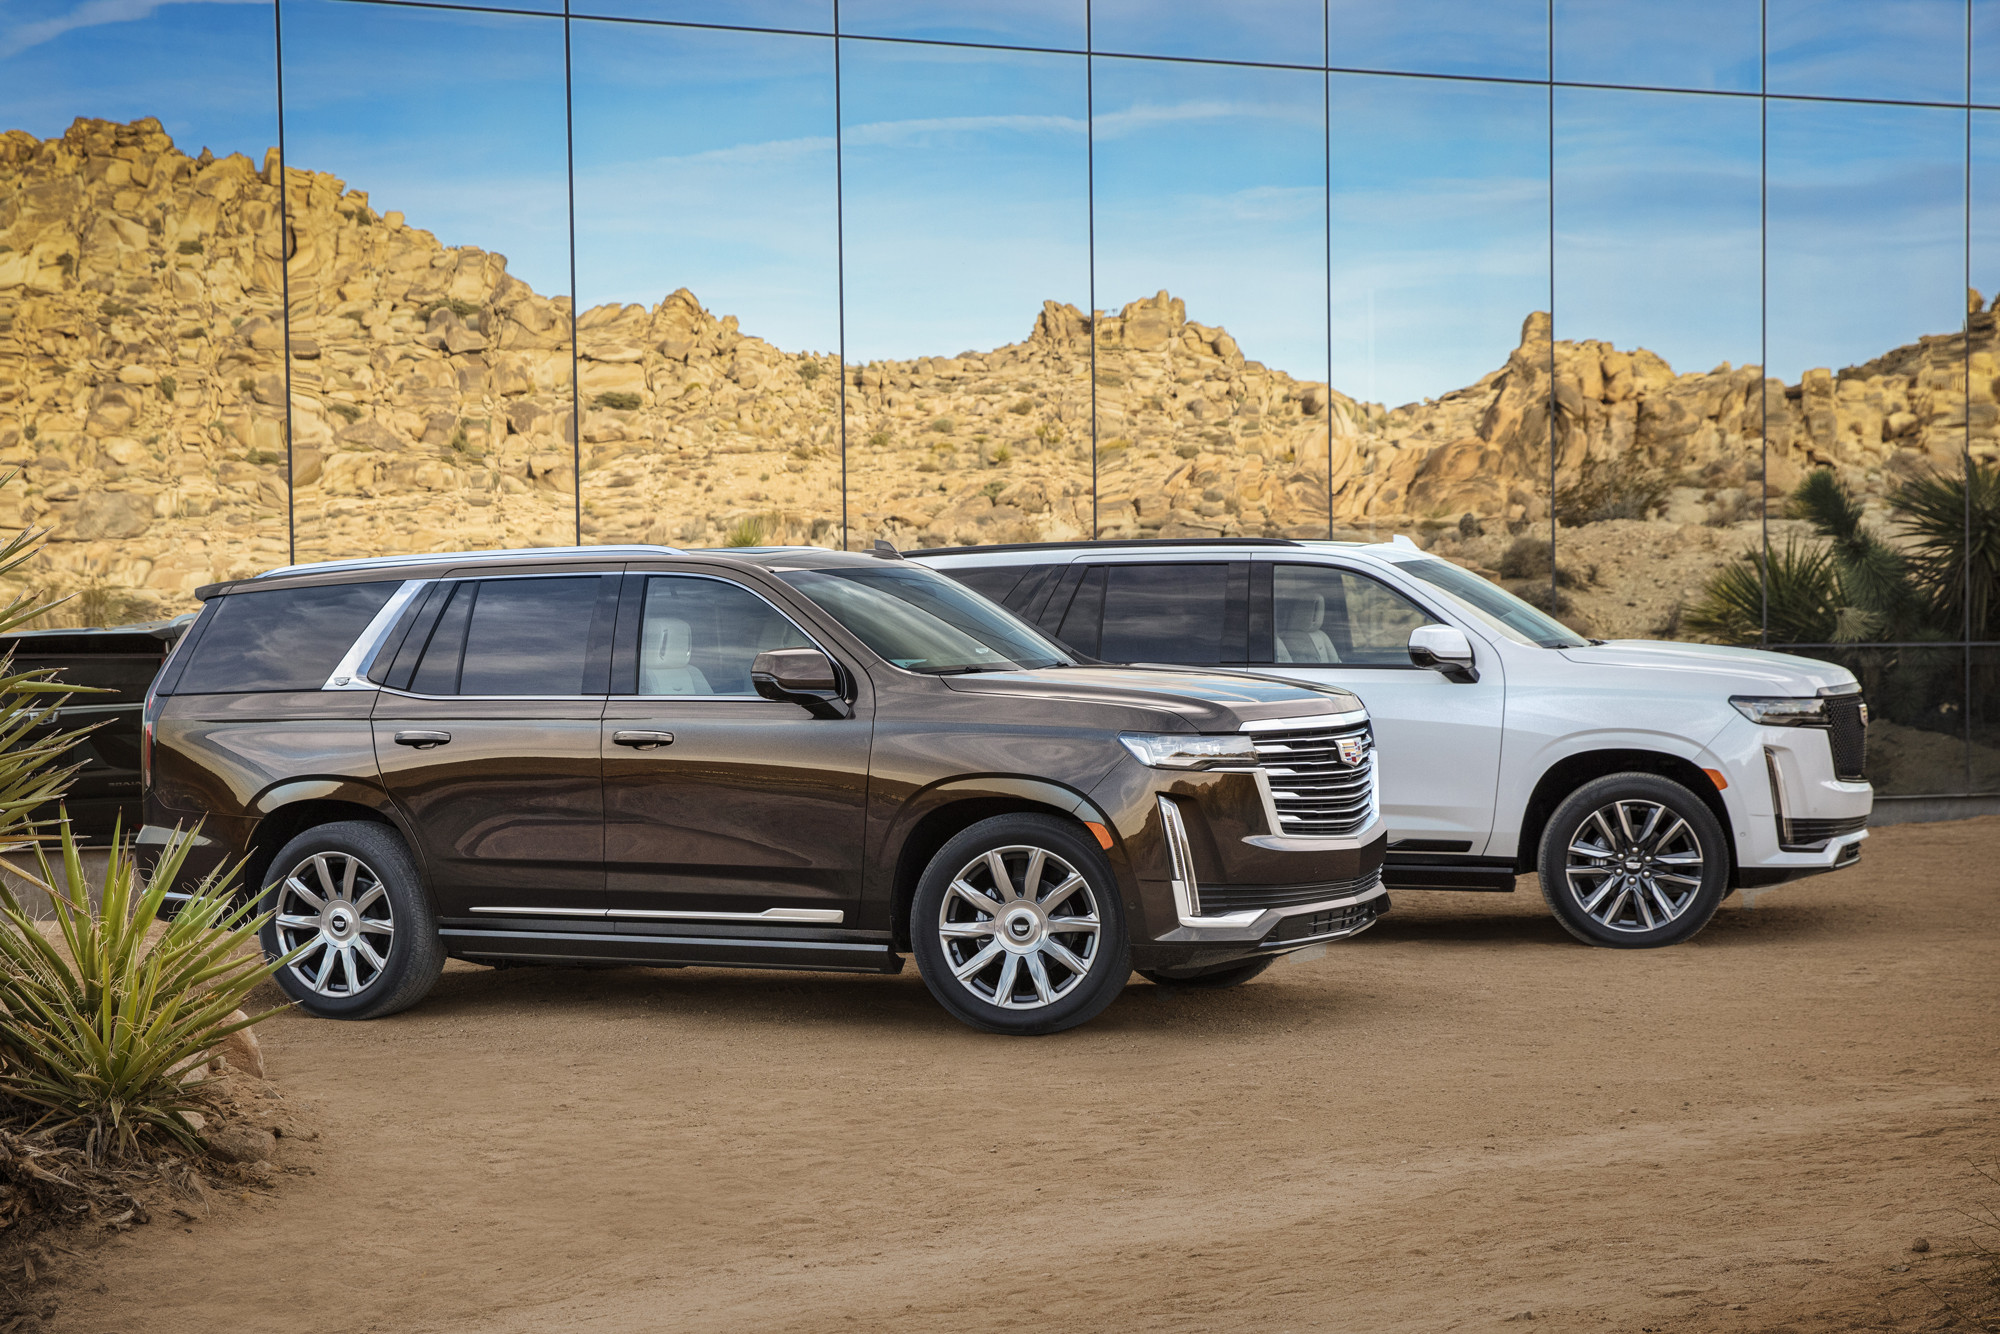 2021 Cadillac Escalade: Putting the Navigator on Notice